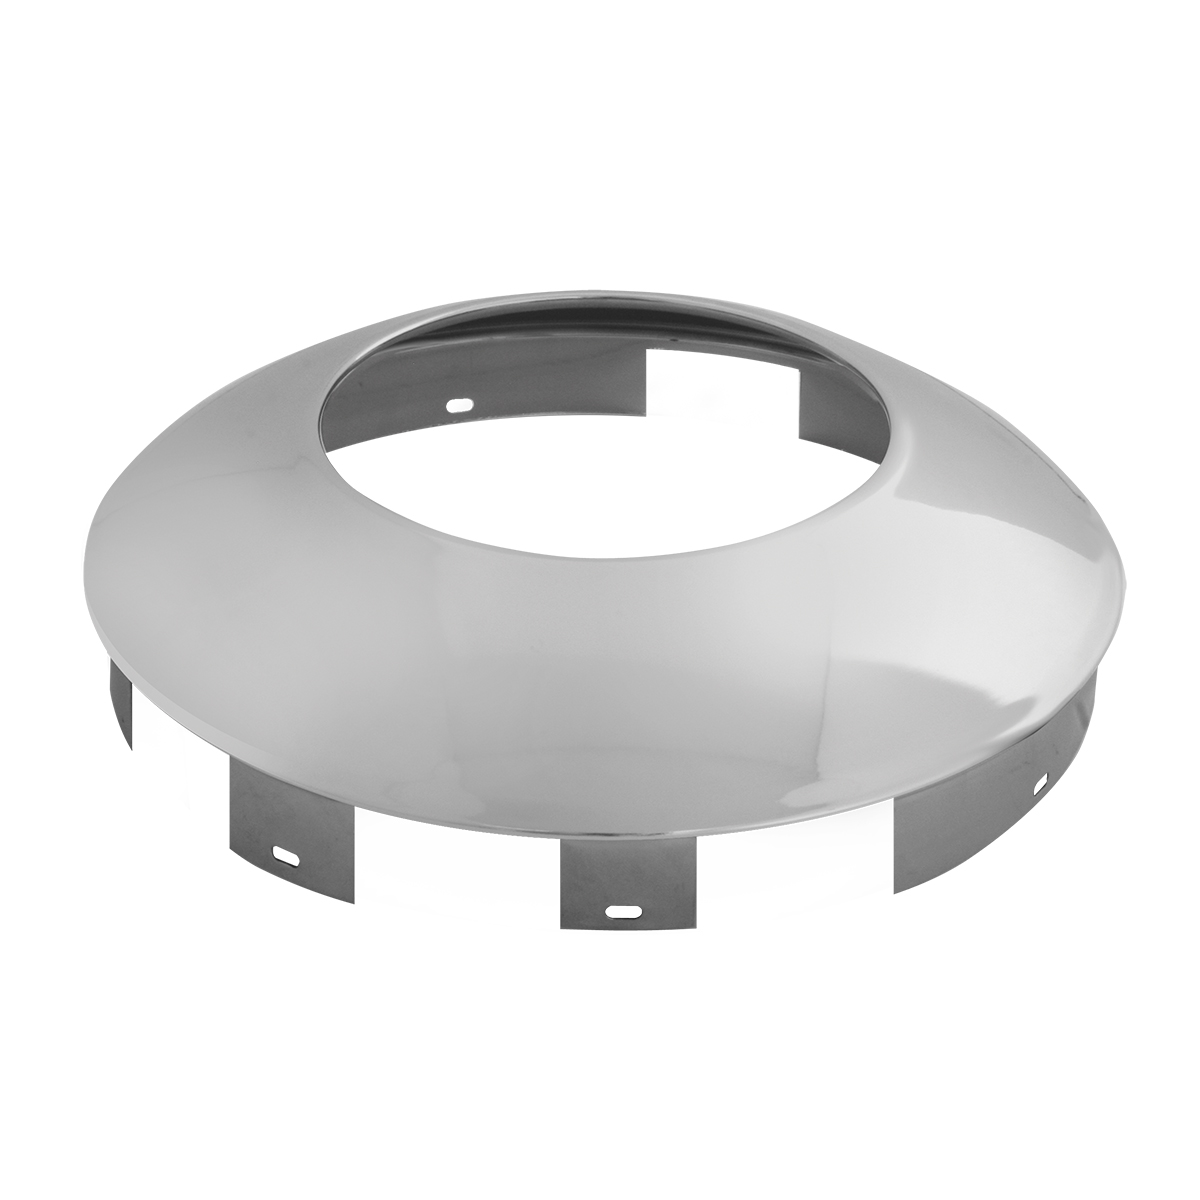 "Chrome Plated 1"" Front Hubdometer Cap"